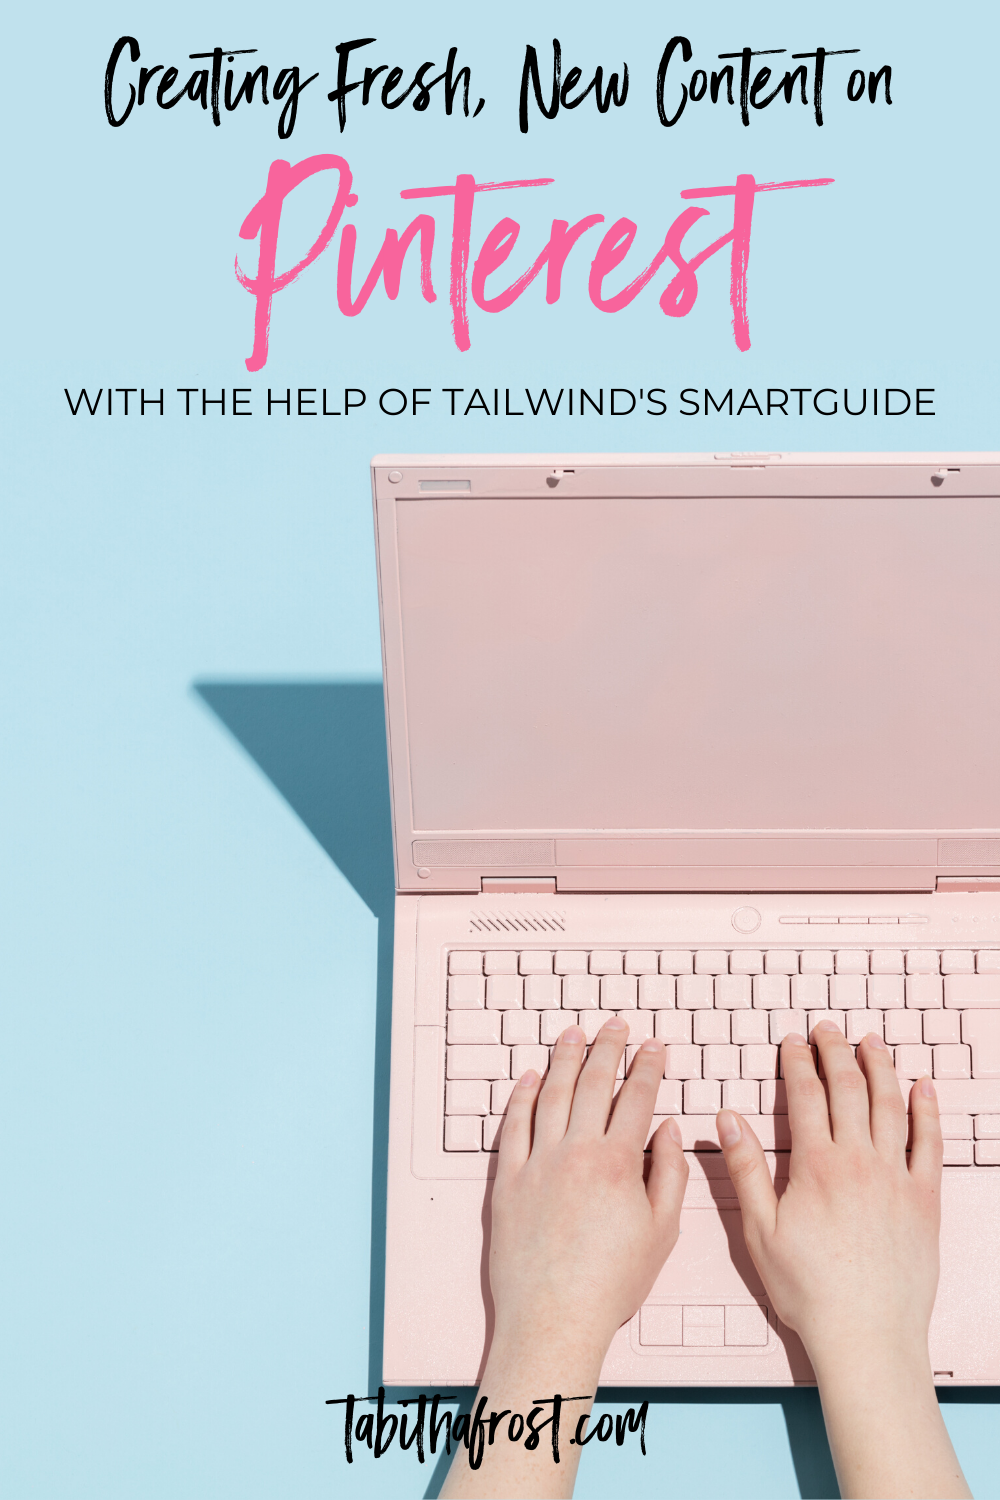 If you are wanting to know the down low on current trends and Pinterest algorithms, here is what you need to know as a Pinterest creator in 2020. #pinterestmarketing